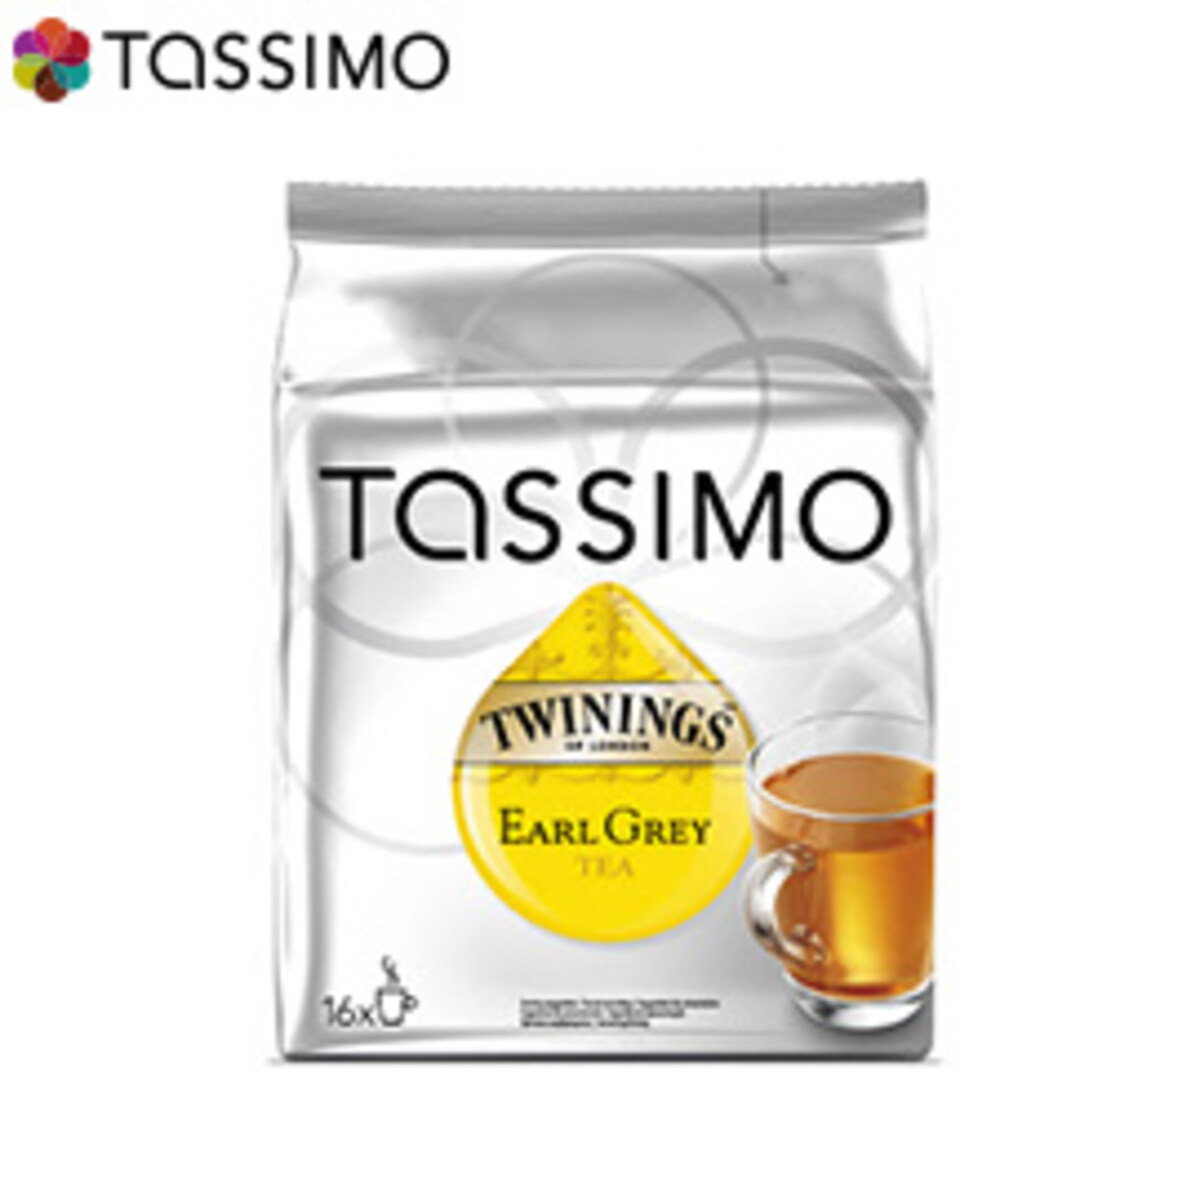 Tassimo Twinings Earl Grey Tea